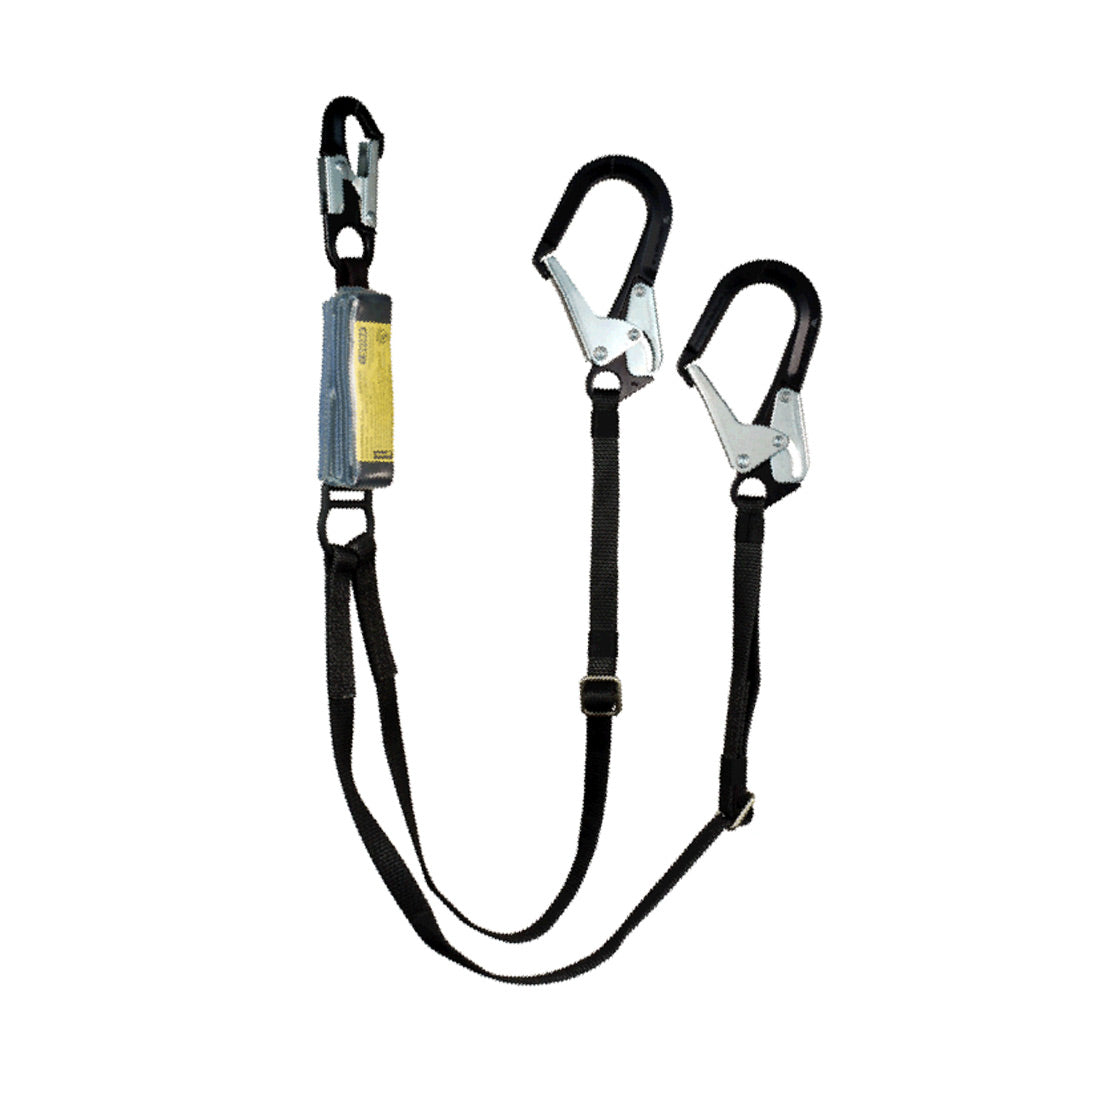 YATES Stage Rigging Fall Adjustable Lanyards -Twin Teg